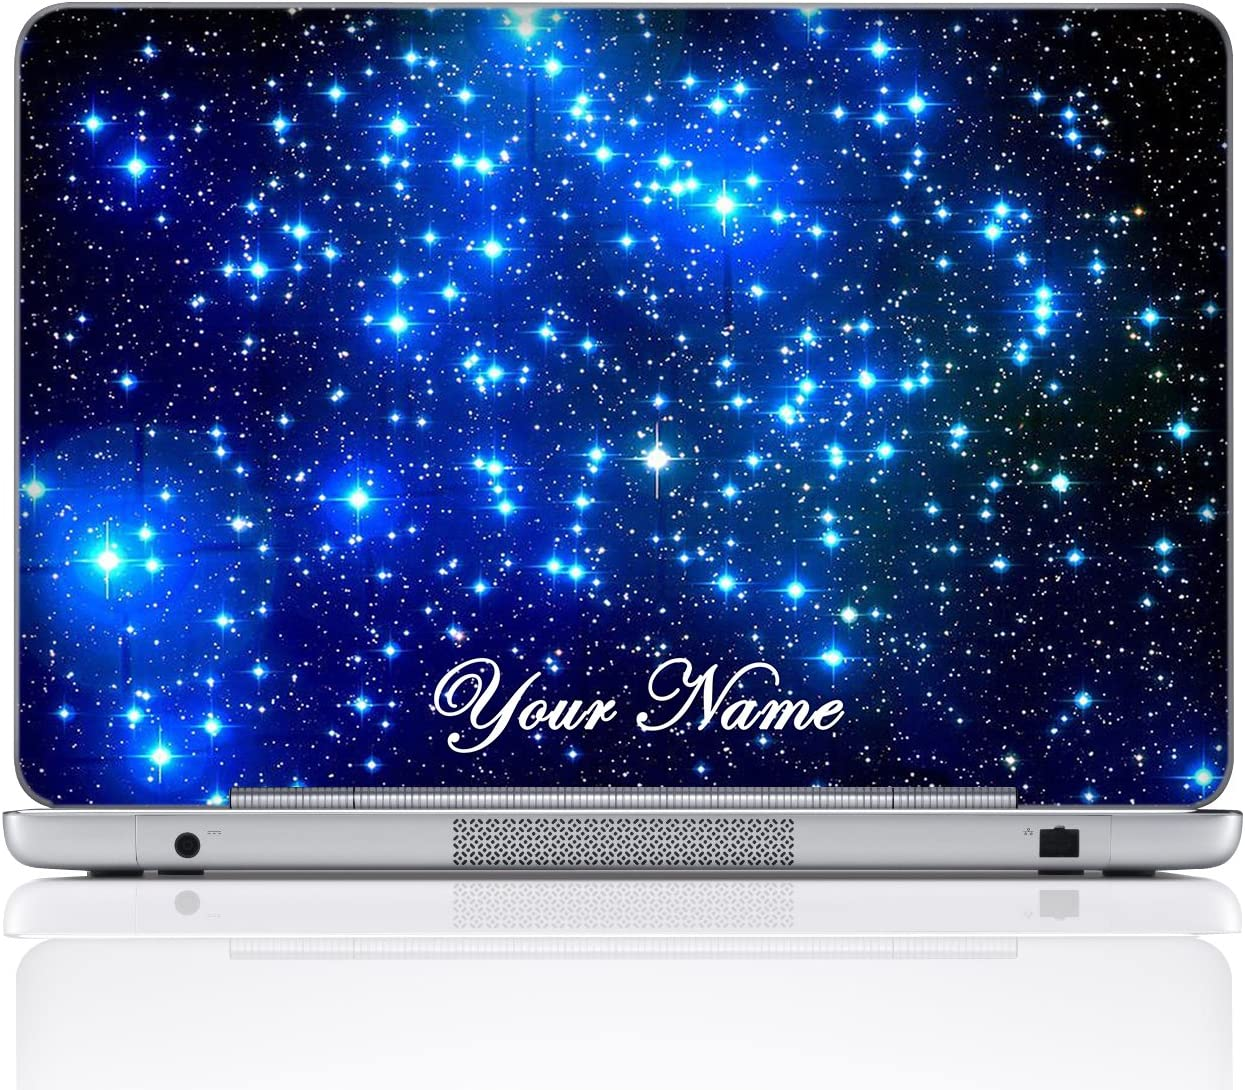 17 Inch, Silver Metal Customize Your Name Meffort Inc Personalized Laptop Notebook Notebook Skin Sticker Cover Art Decal